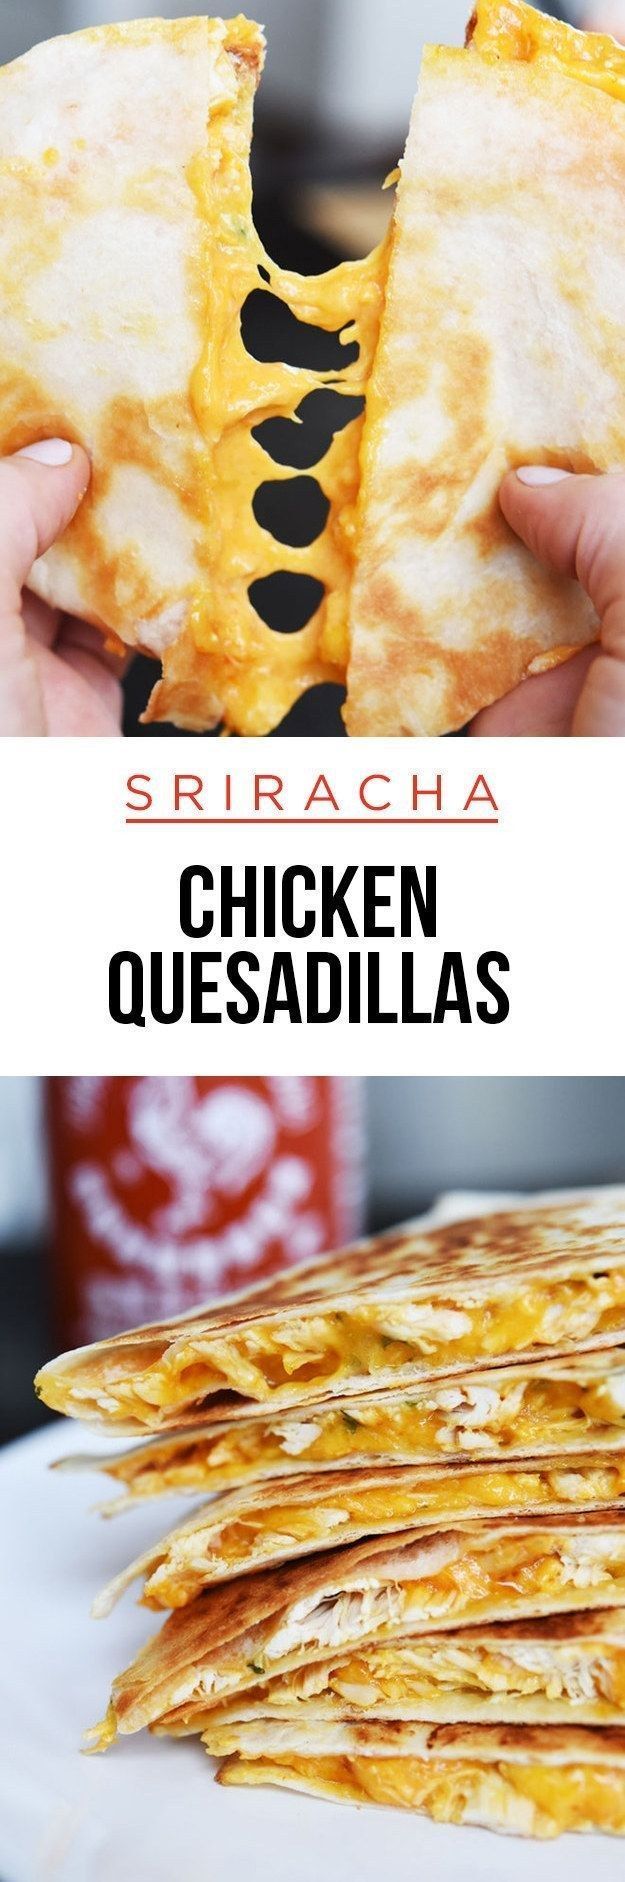 Sriracha Chicken Quesadillas | 24 Easy Meals You Can Make With Rotisserie Chicken